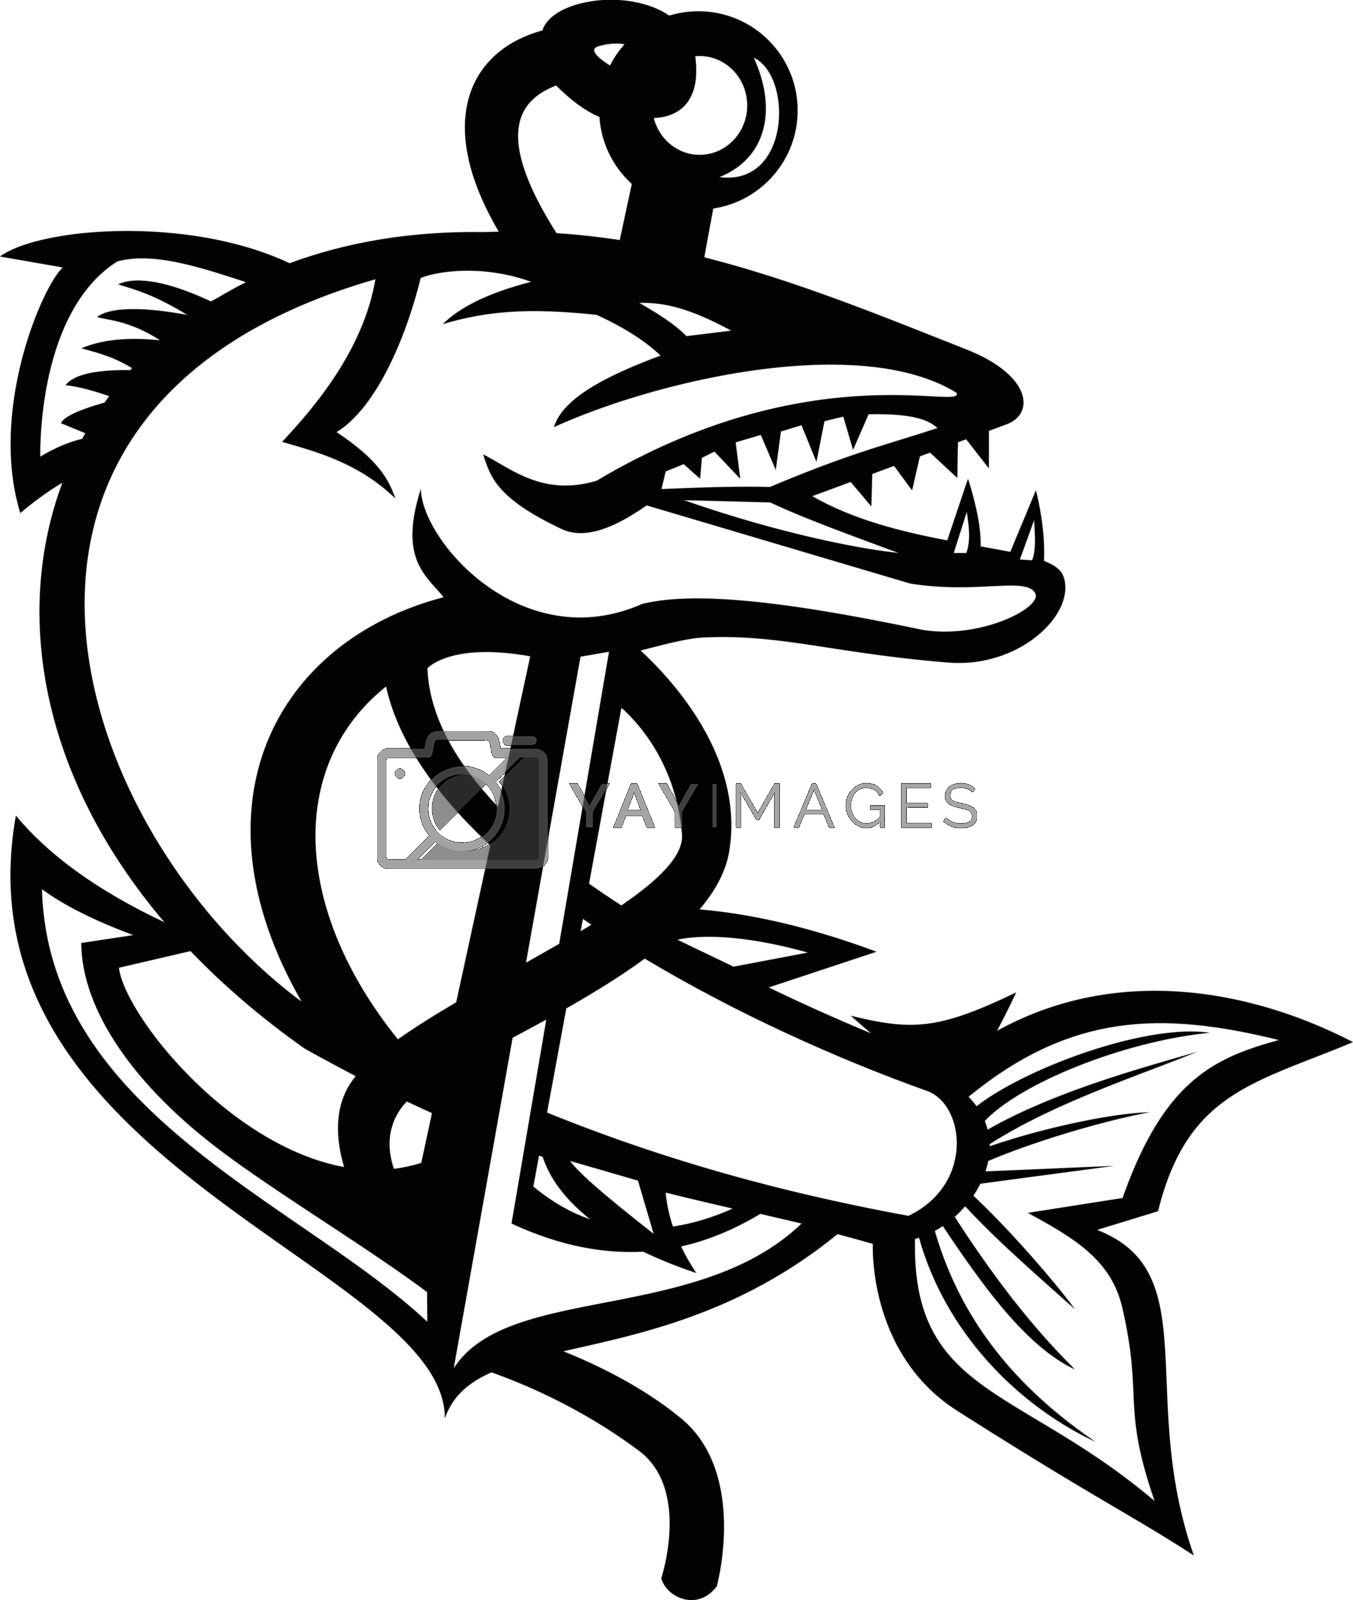 Mascot black and white illustration of great barracuda, a saltwater fish that is snake-like with fearsome appearance and ferocious behavior coiling up sea claw anchor on isolated background in retro style.